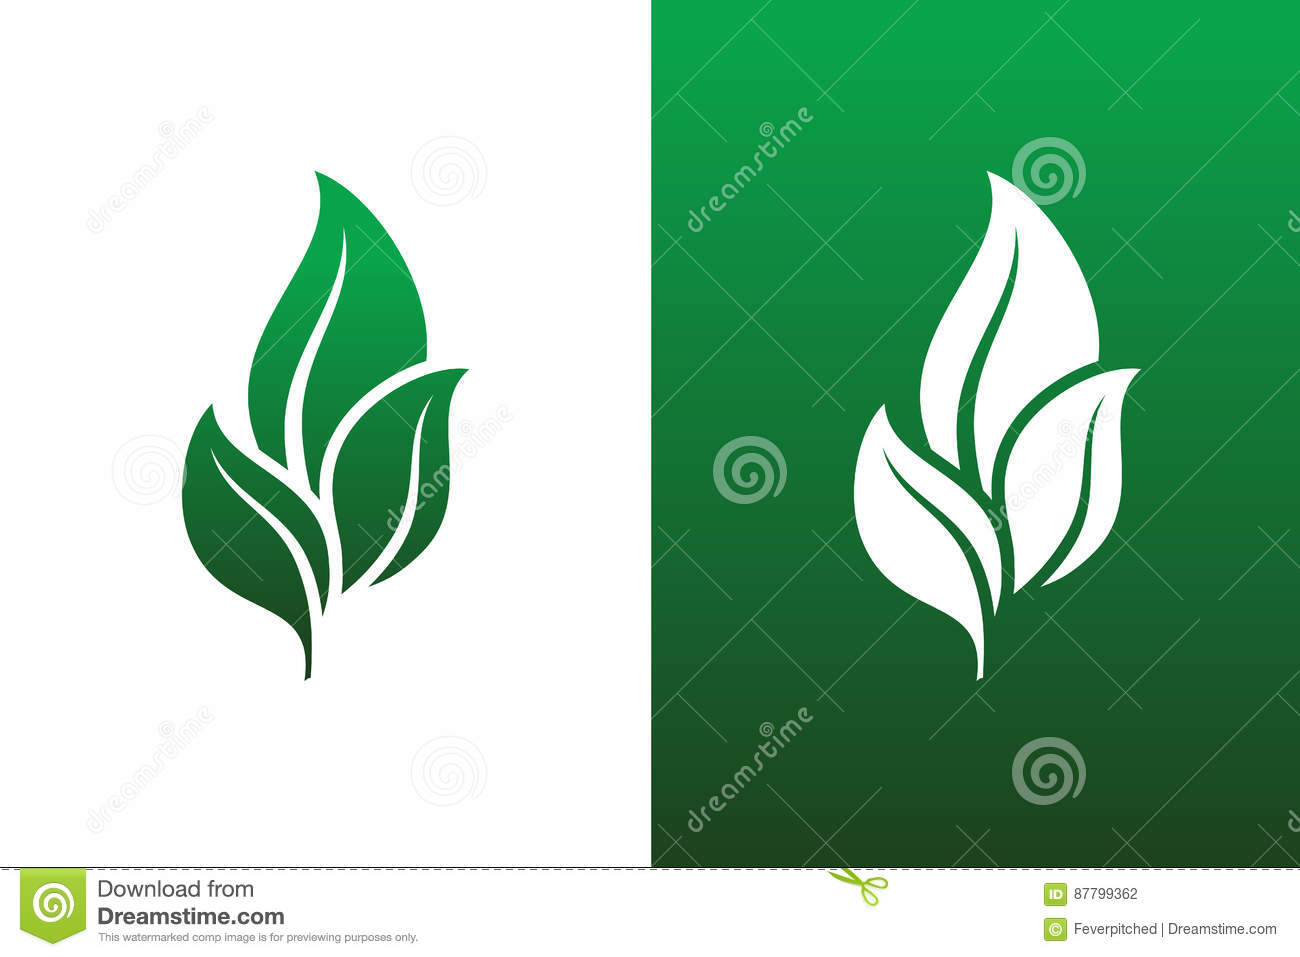 Leaf Pair Icons Vectors Illustrations on Both Solid and Reversed B